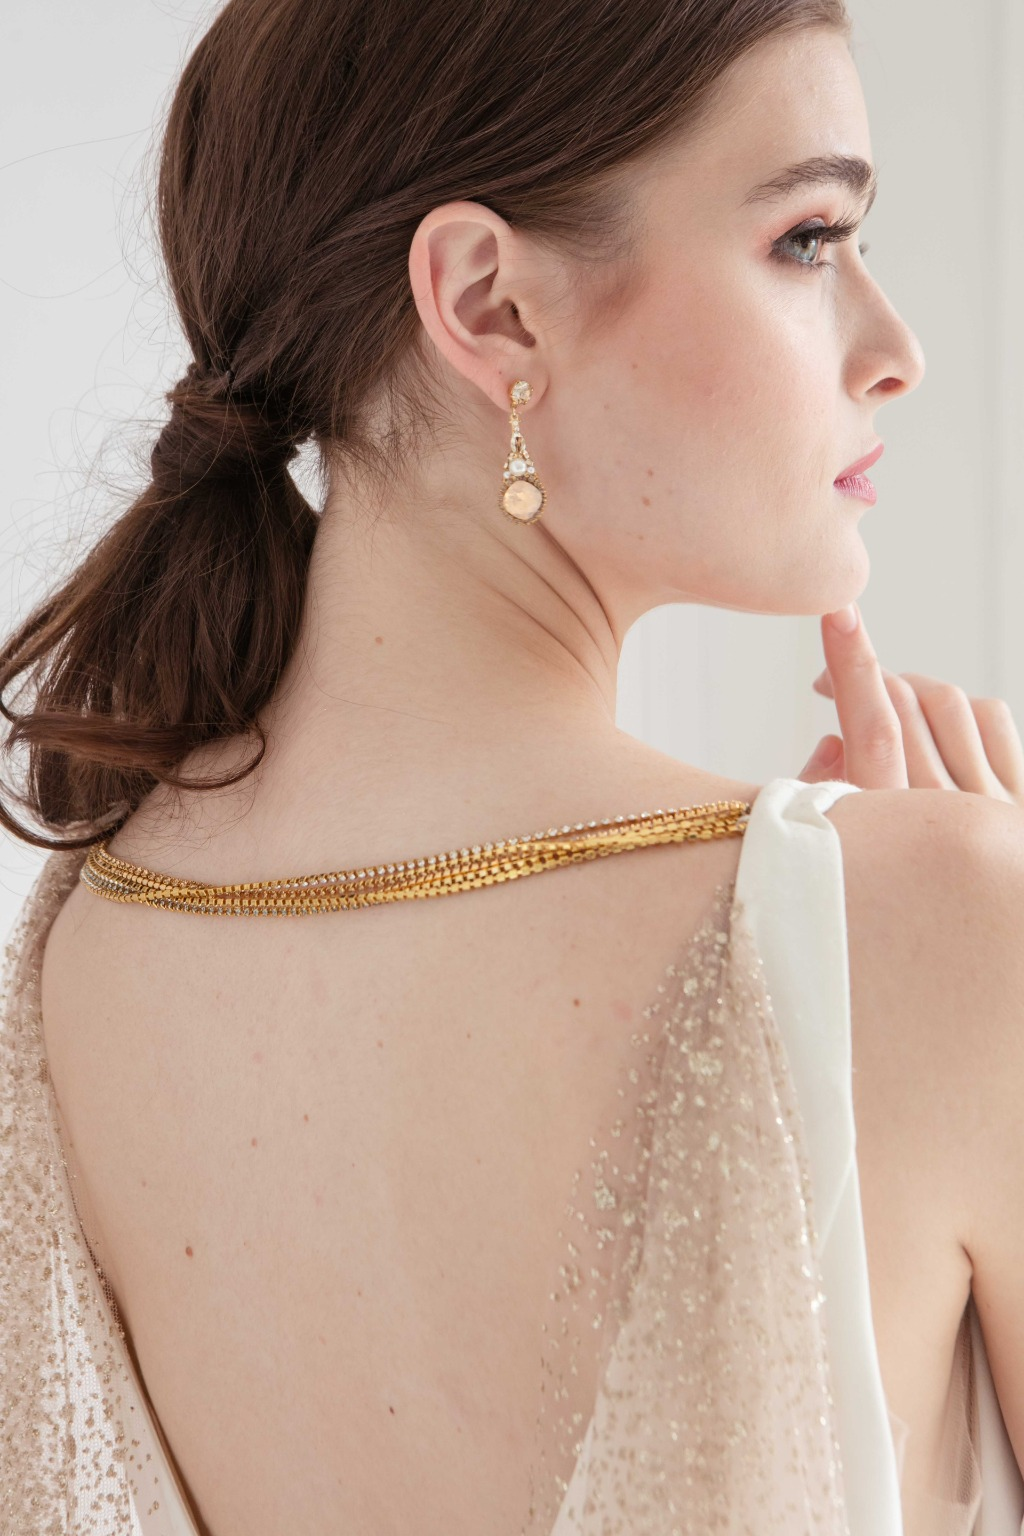 Wedding inspiration for bridal jewelry from Laura Jayne.